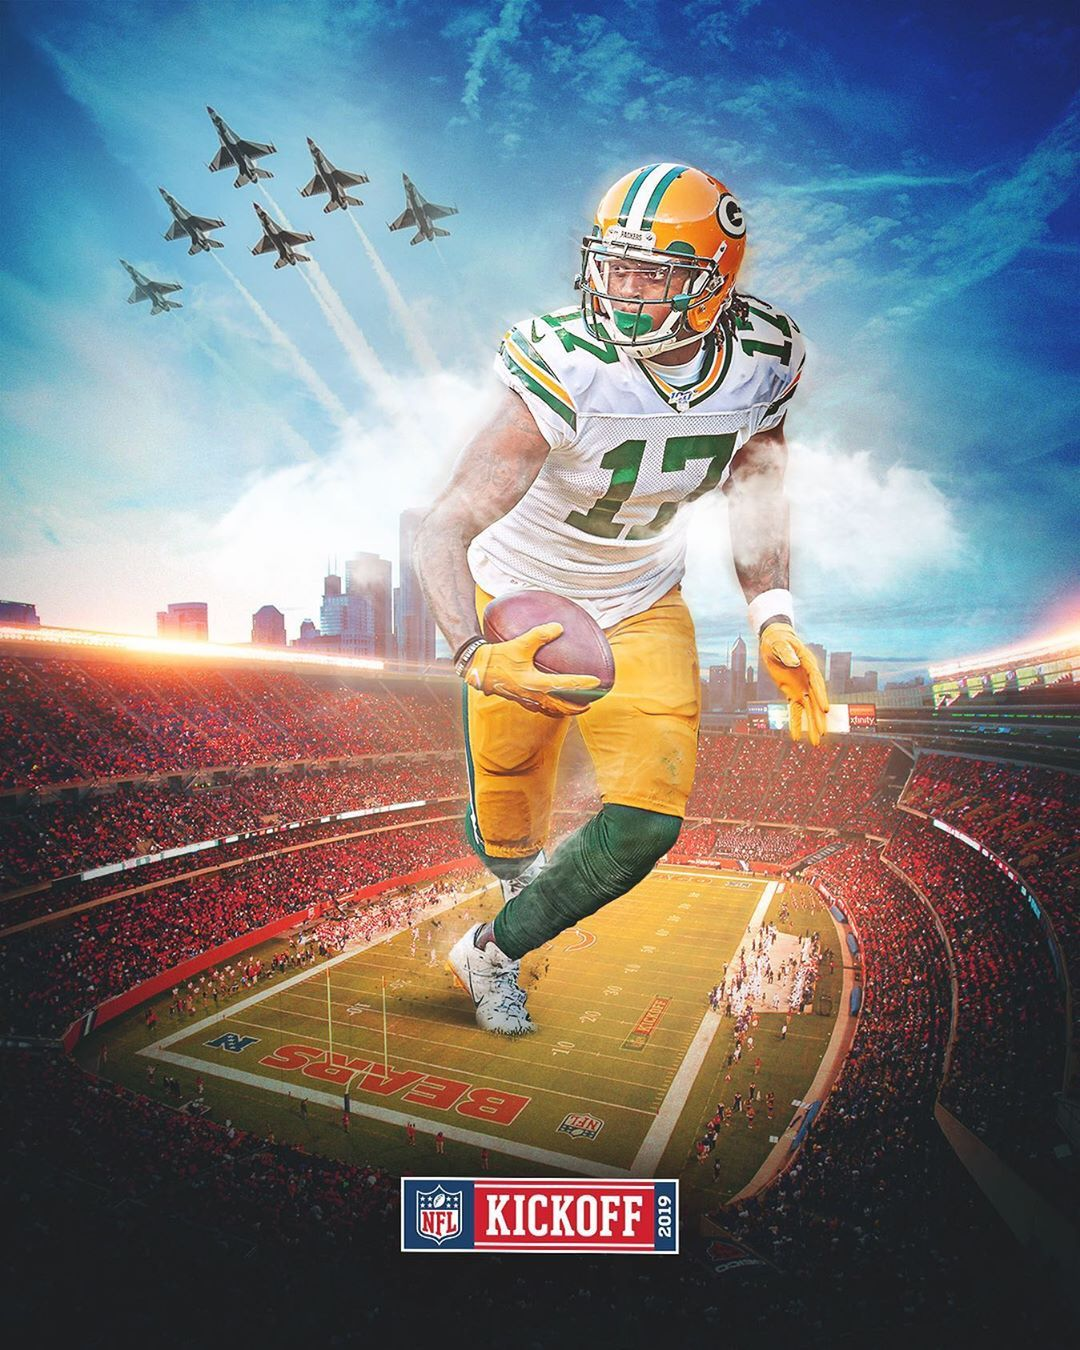 Green Bay Packers On Instagram 1 7 Days To Kickoff In Chicago Nfl100 Gopackgo Green Bay Packers Green Bay Green Bay Packers Football